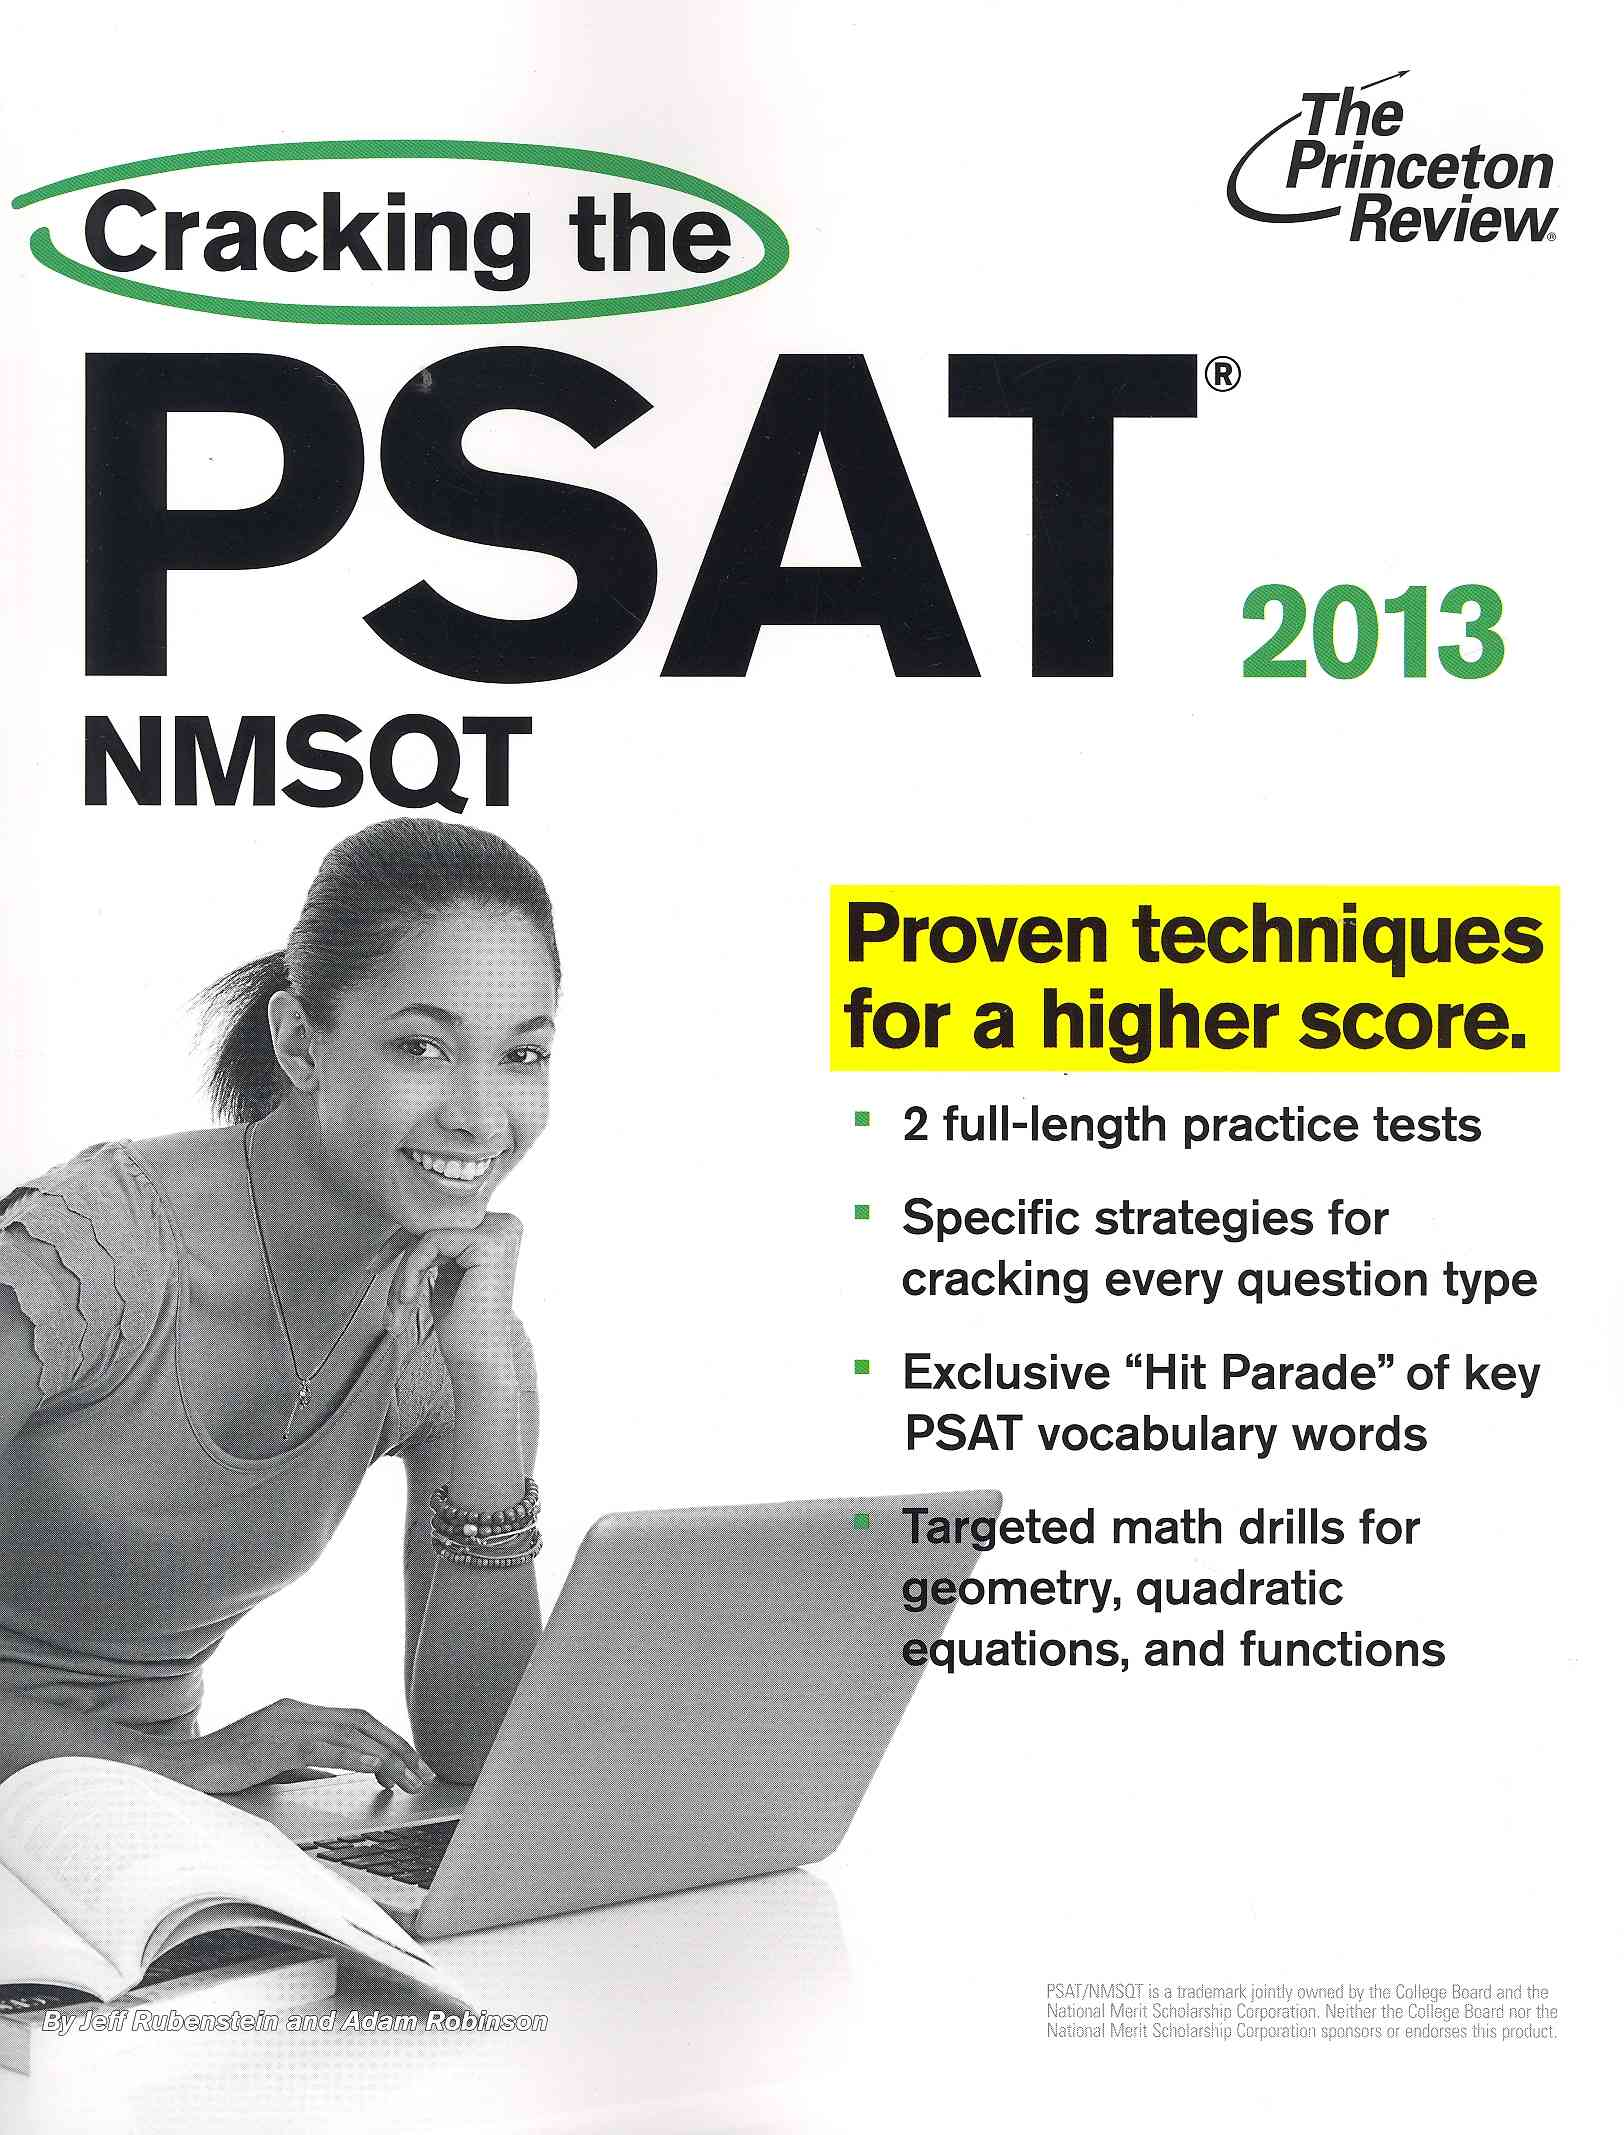 Cracking the PSAT NMSQT 2013 (Paperback)